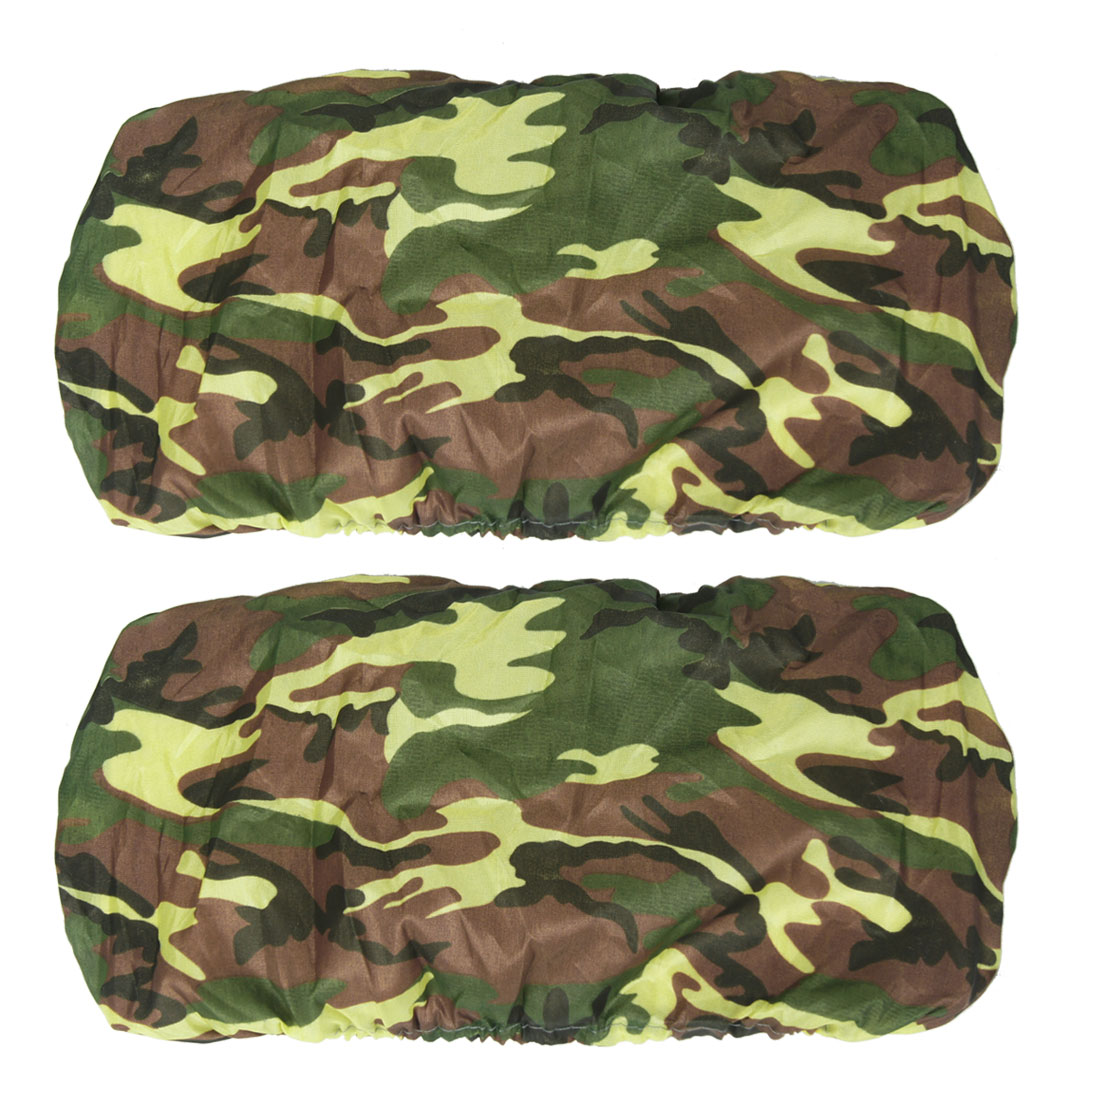 Auto Car Camouflage Pattern Number Plate Anti Dust Cover Protector 2 Pcs